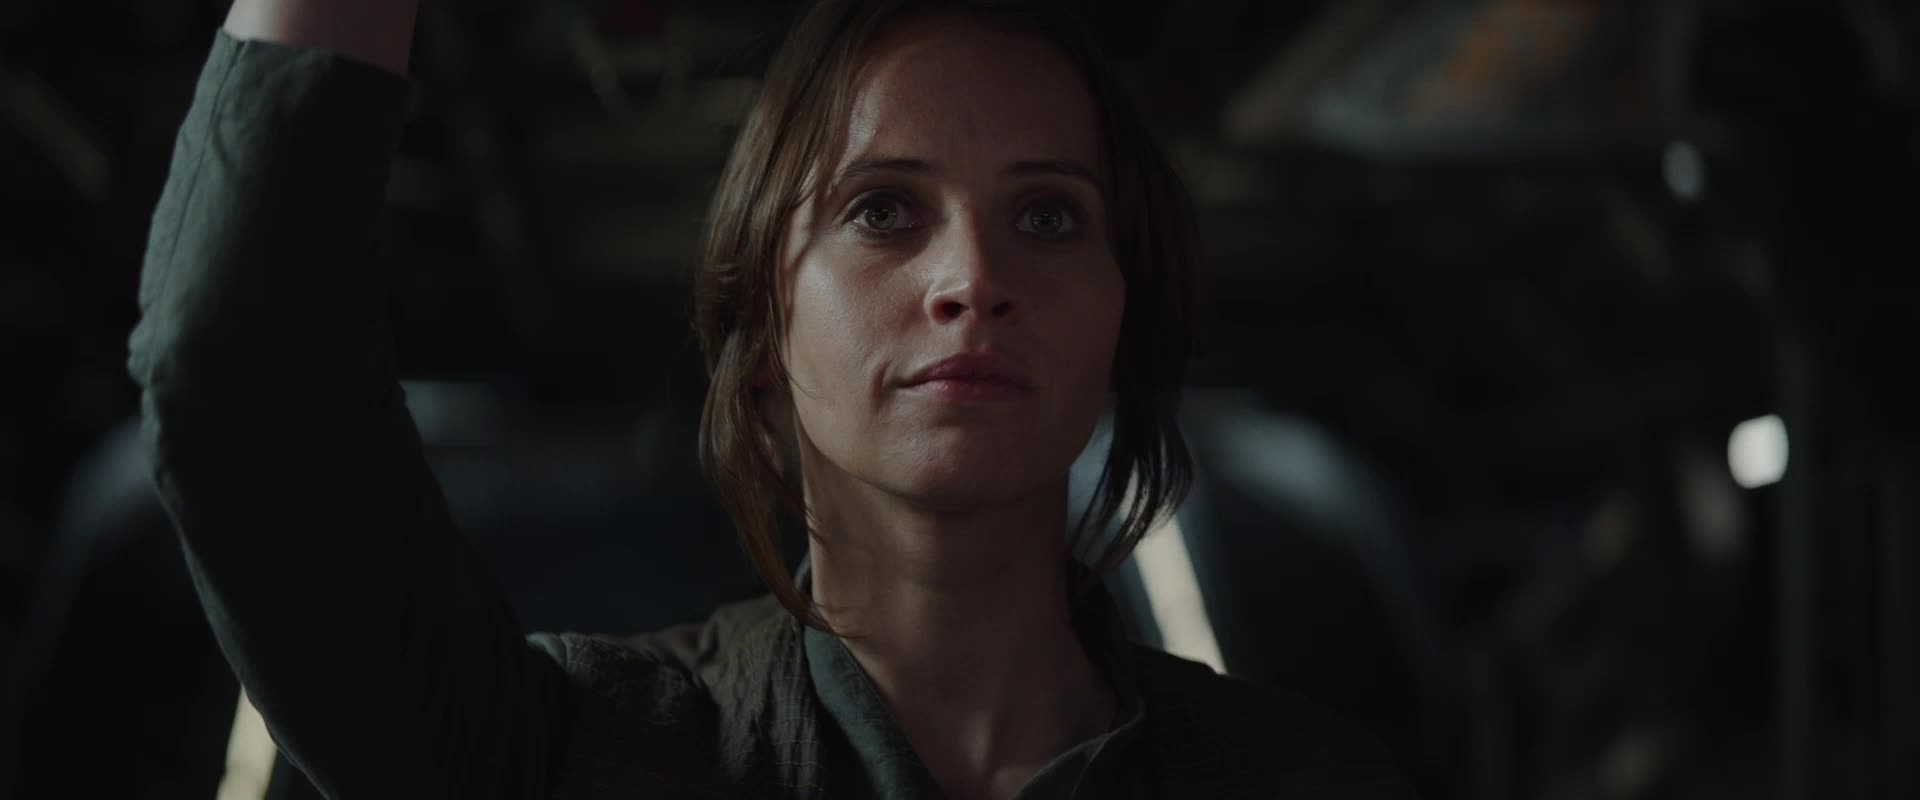 Rogue One: A Star Wars Story - Final Trailer